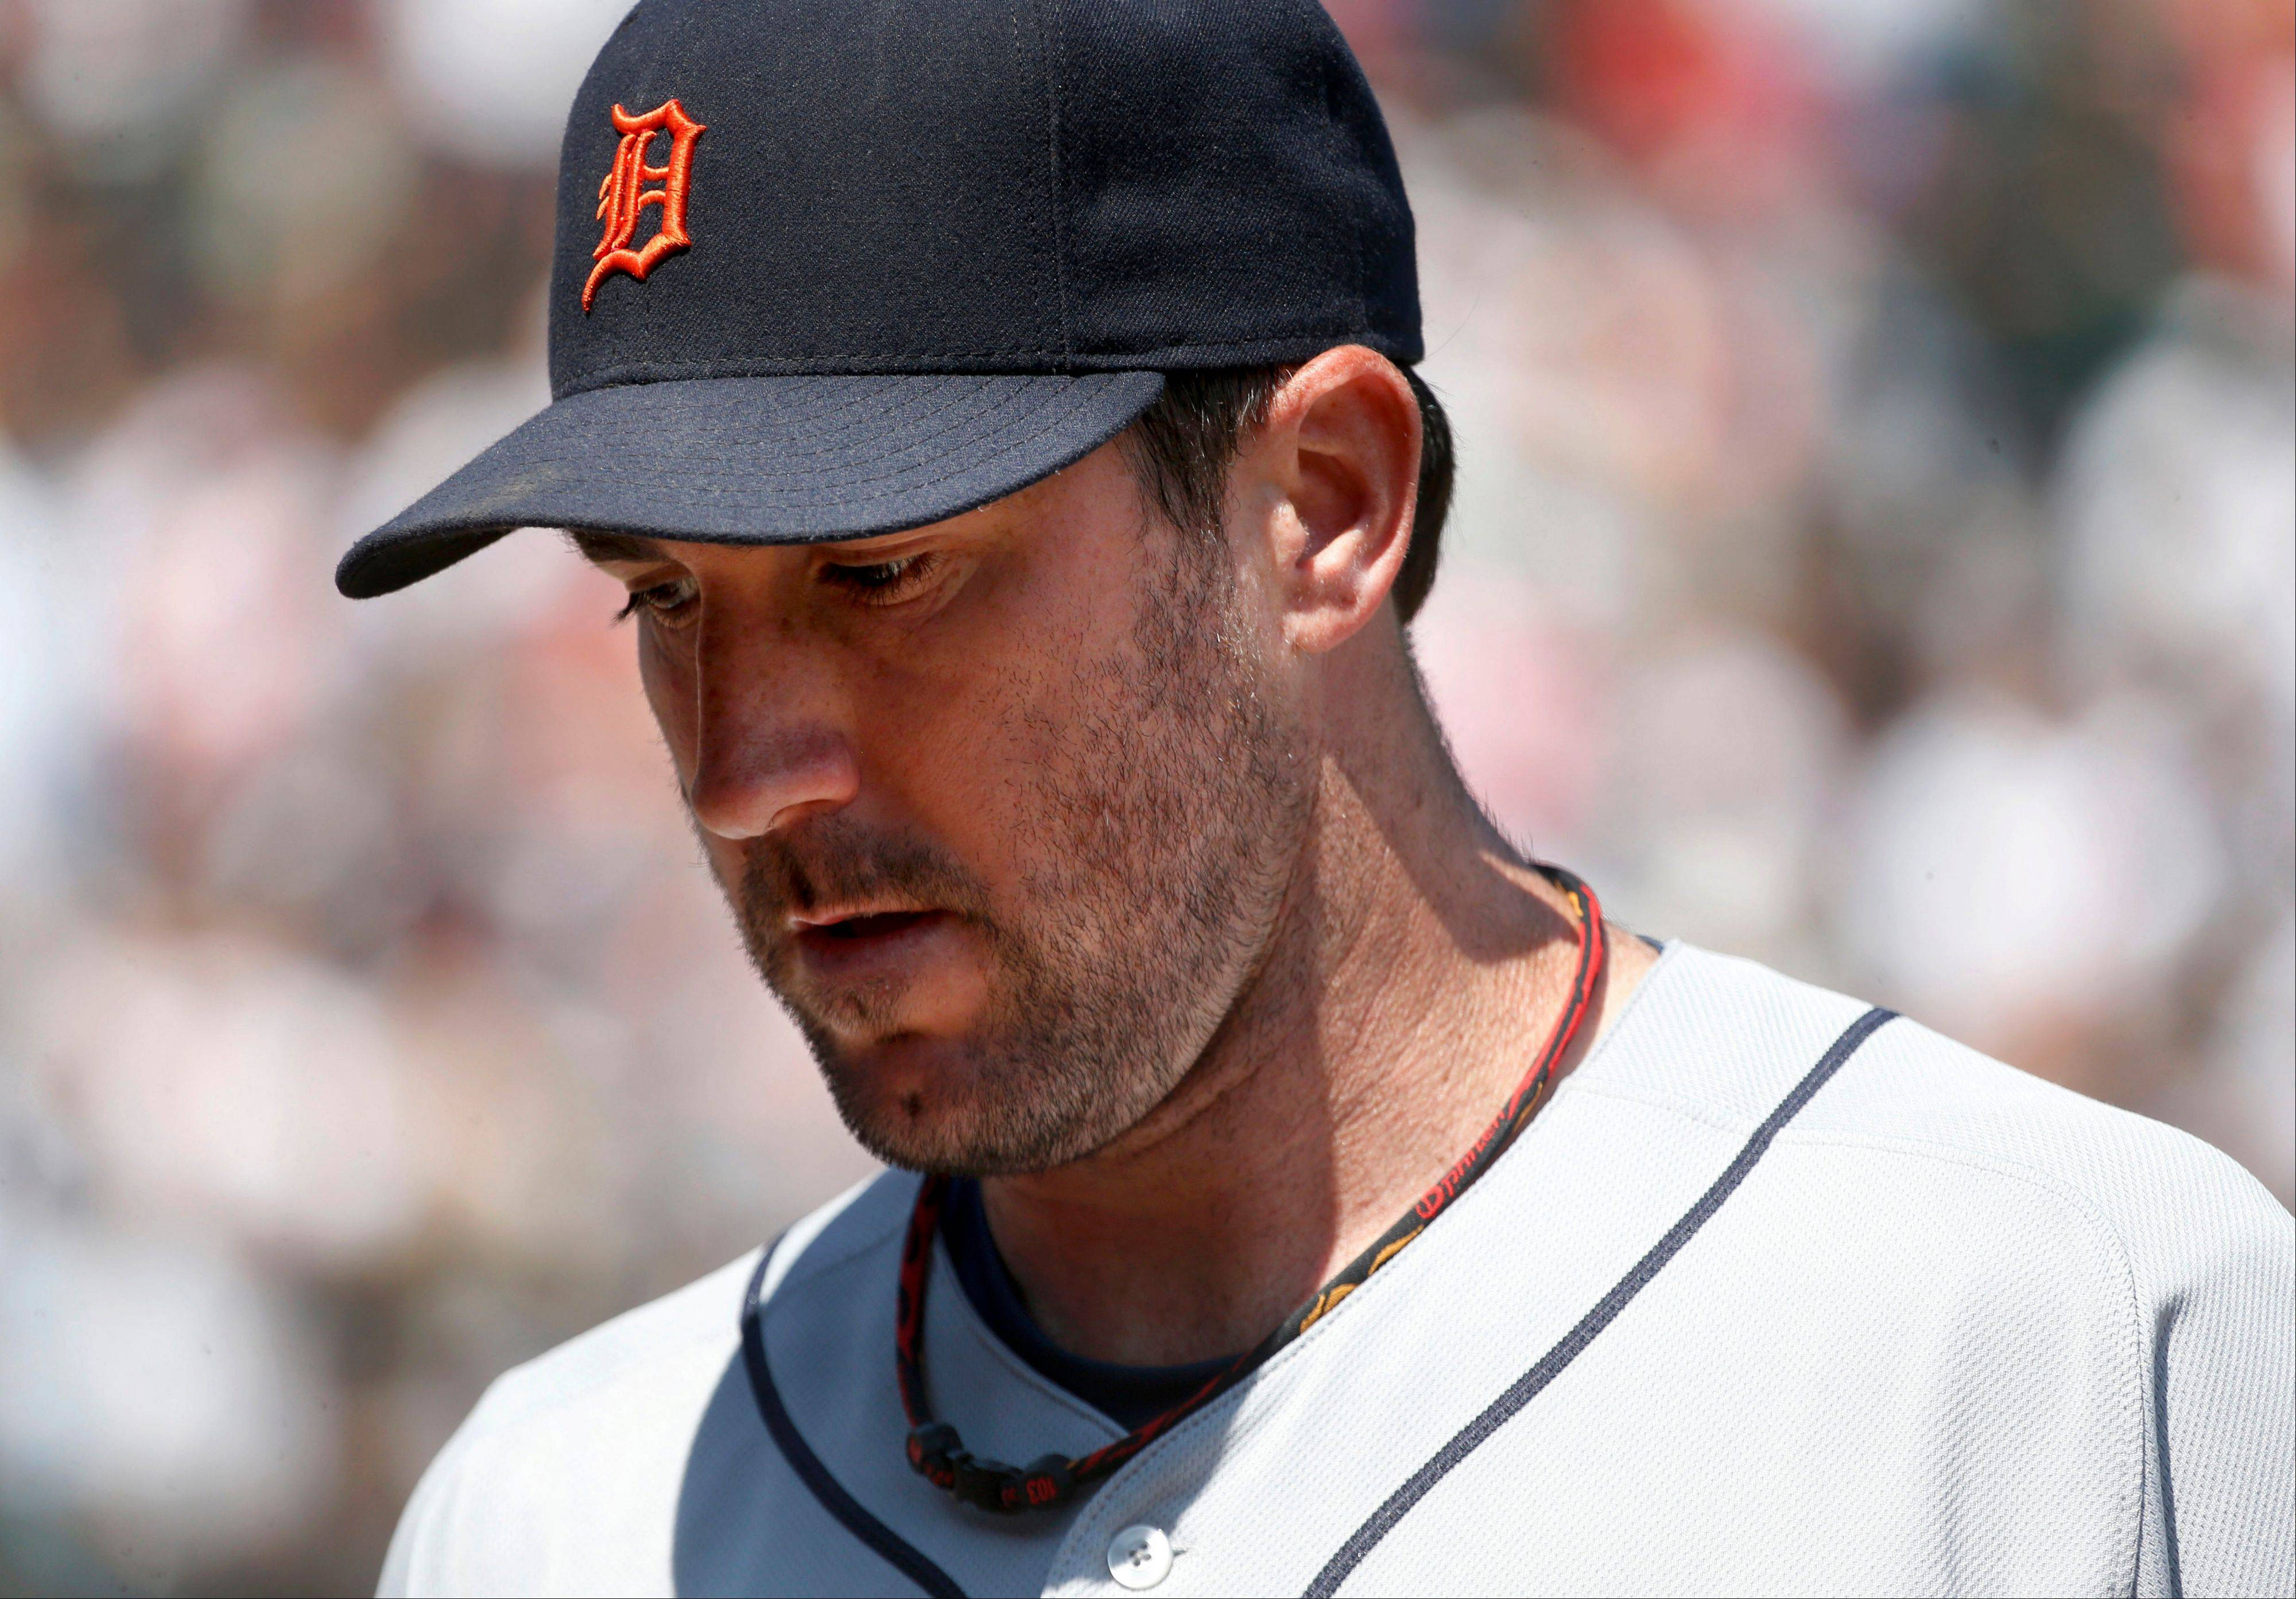 Detroit Tigers starting pitcher Justin Verlander heads into the dugout after giving up four runs to the Chicago White Sox in the fourth inning of a baseball game Thursday, July 25, 2013, in Chicago.